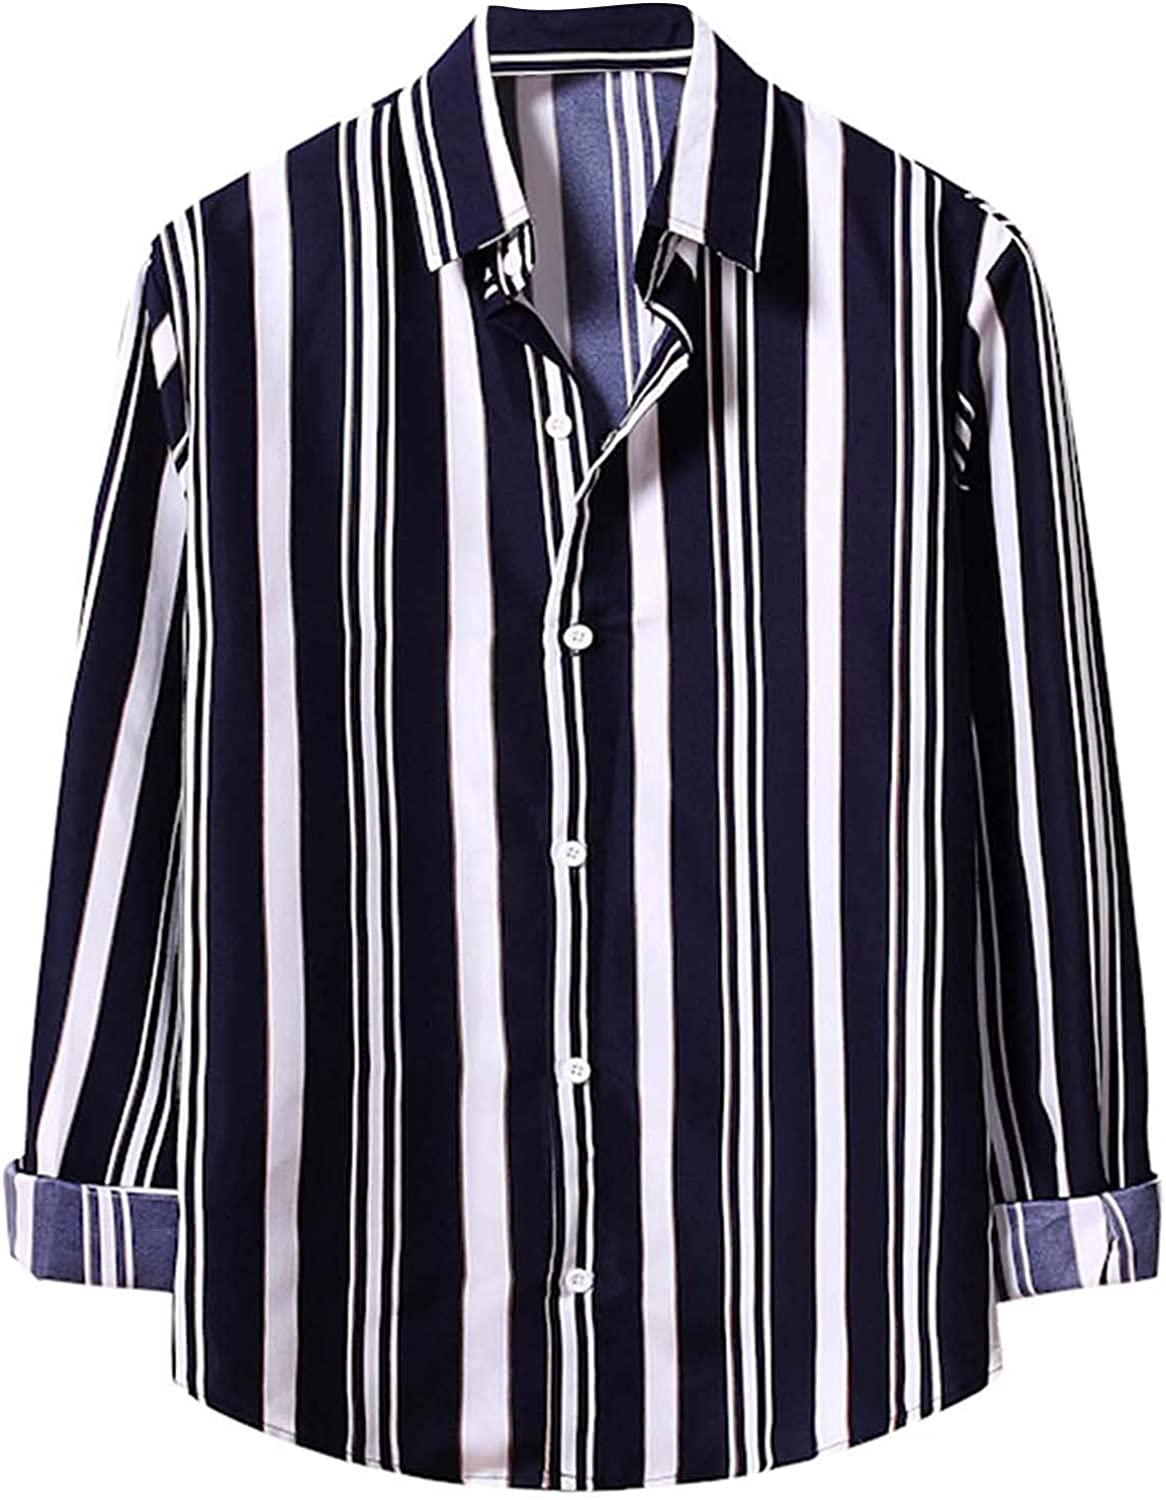 Loose Stripe Print Shirts for Men Turn Down Collar Casual Long Sleeve Buttons Tops Mens Business Work Shirts